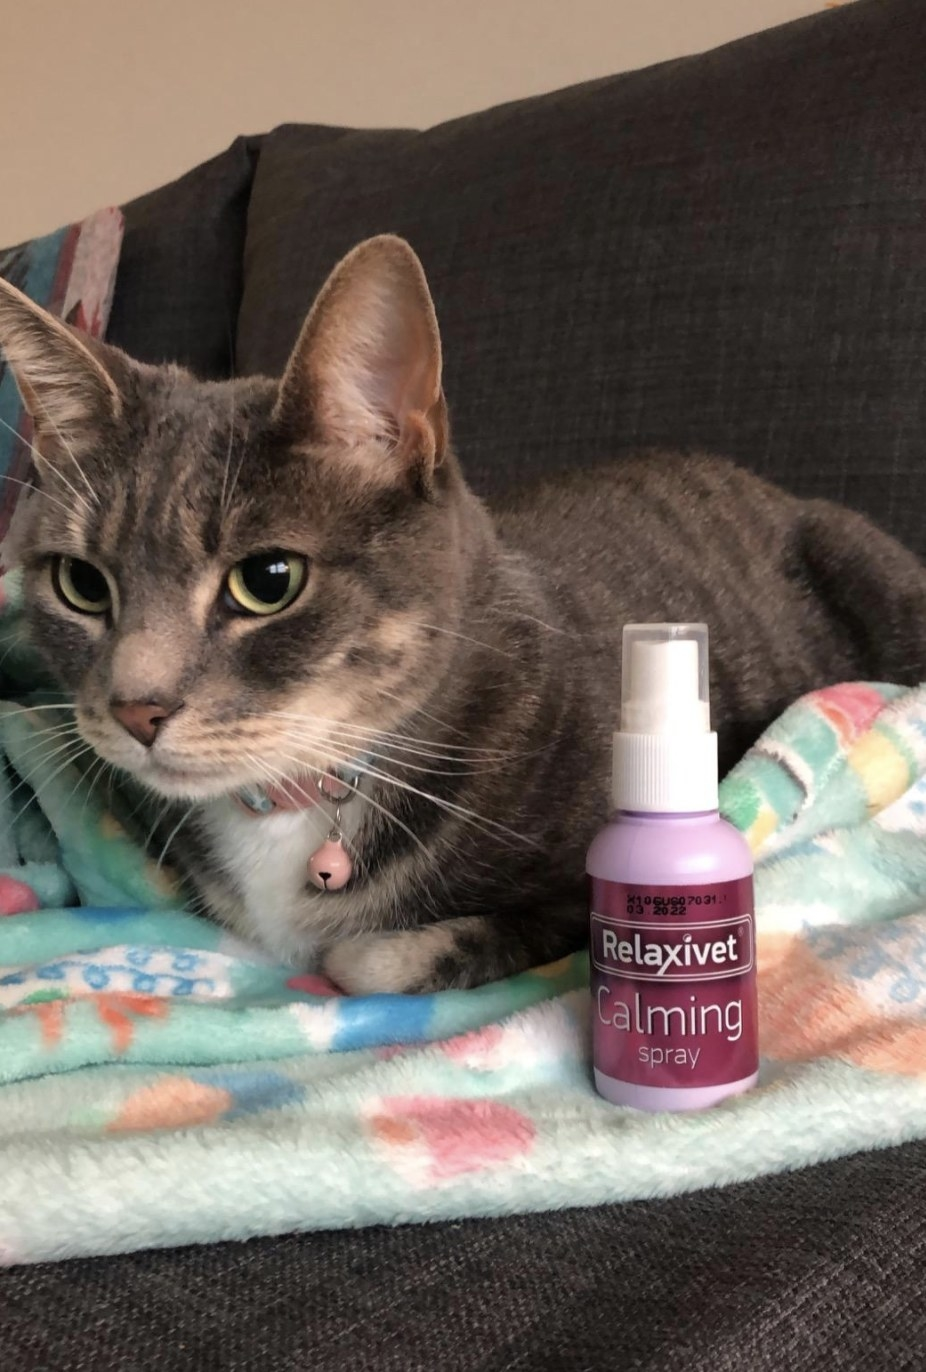 a striped cat laying on a blanket with the relaxivet calming spray next to them